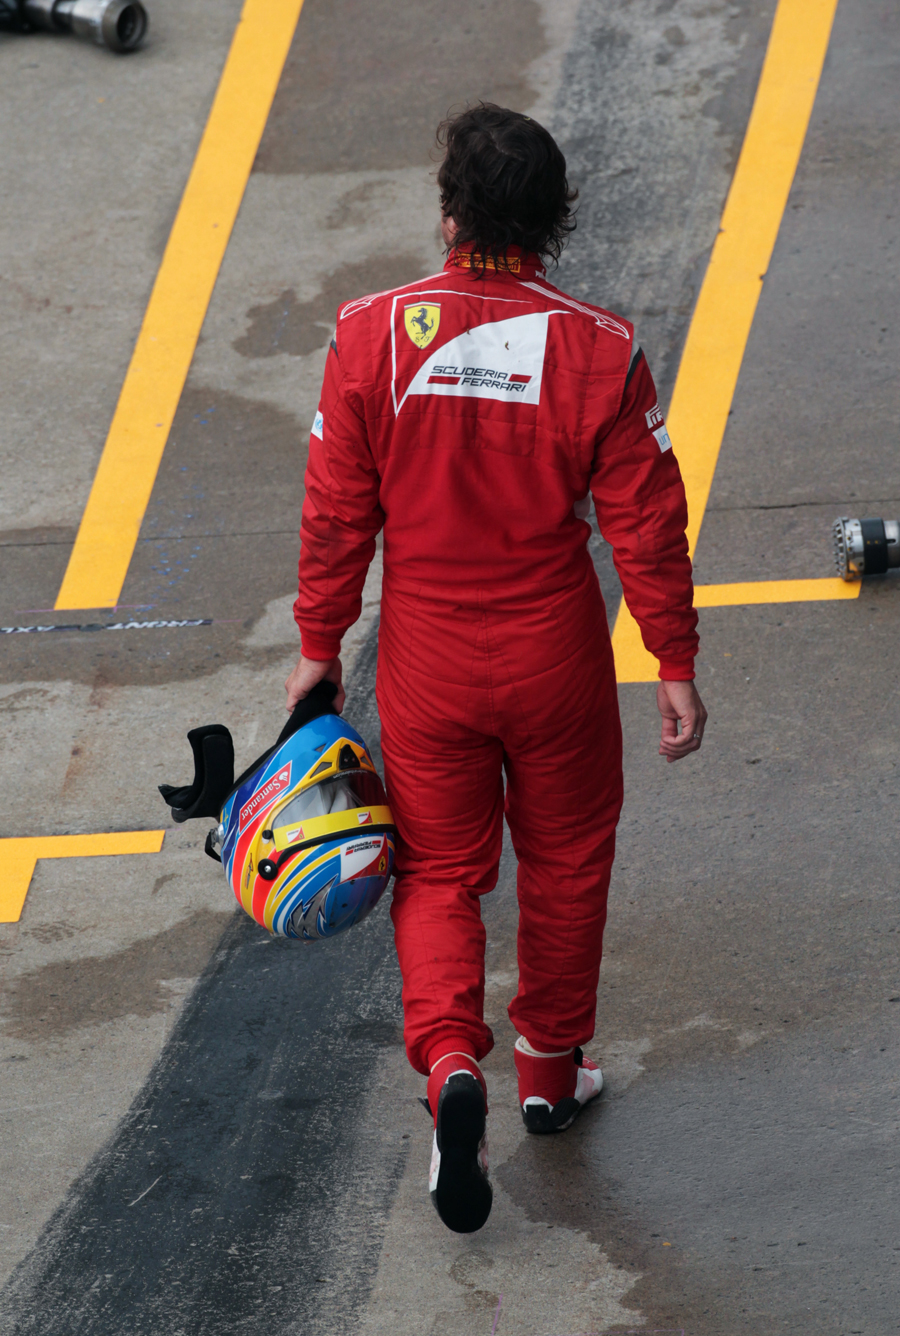 Fernando Alonso trudges back to the pits after his retirement